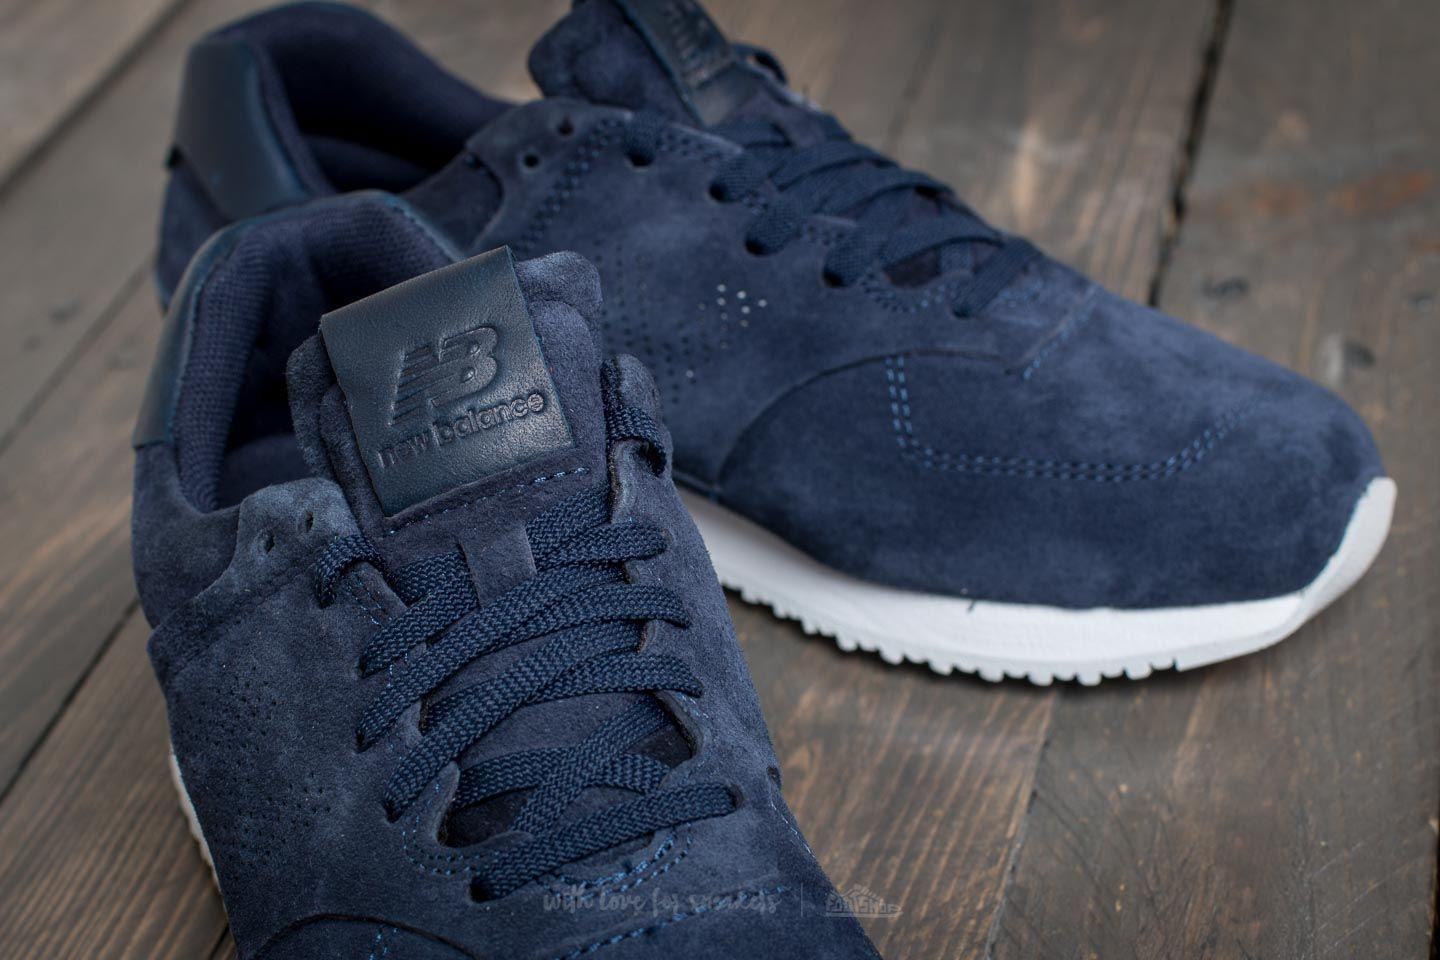 b48f8bf16 Lyst - New Balance 745 Navy in Blue